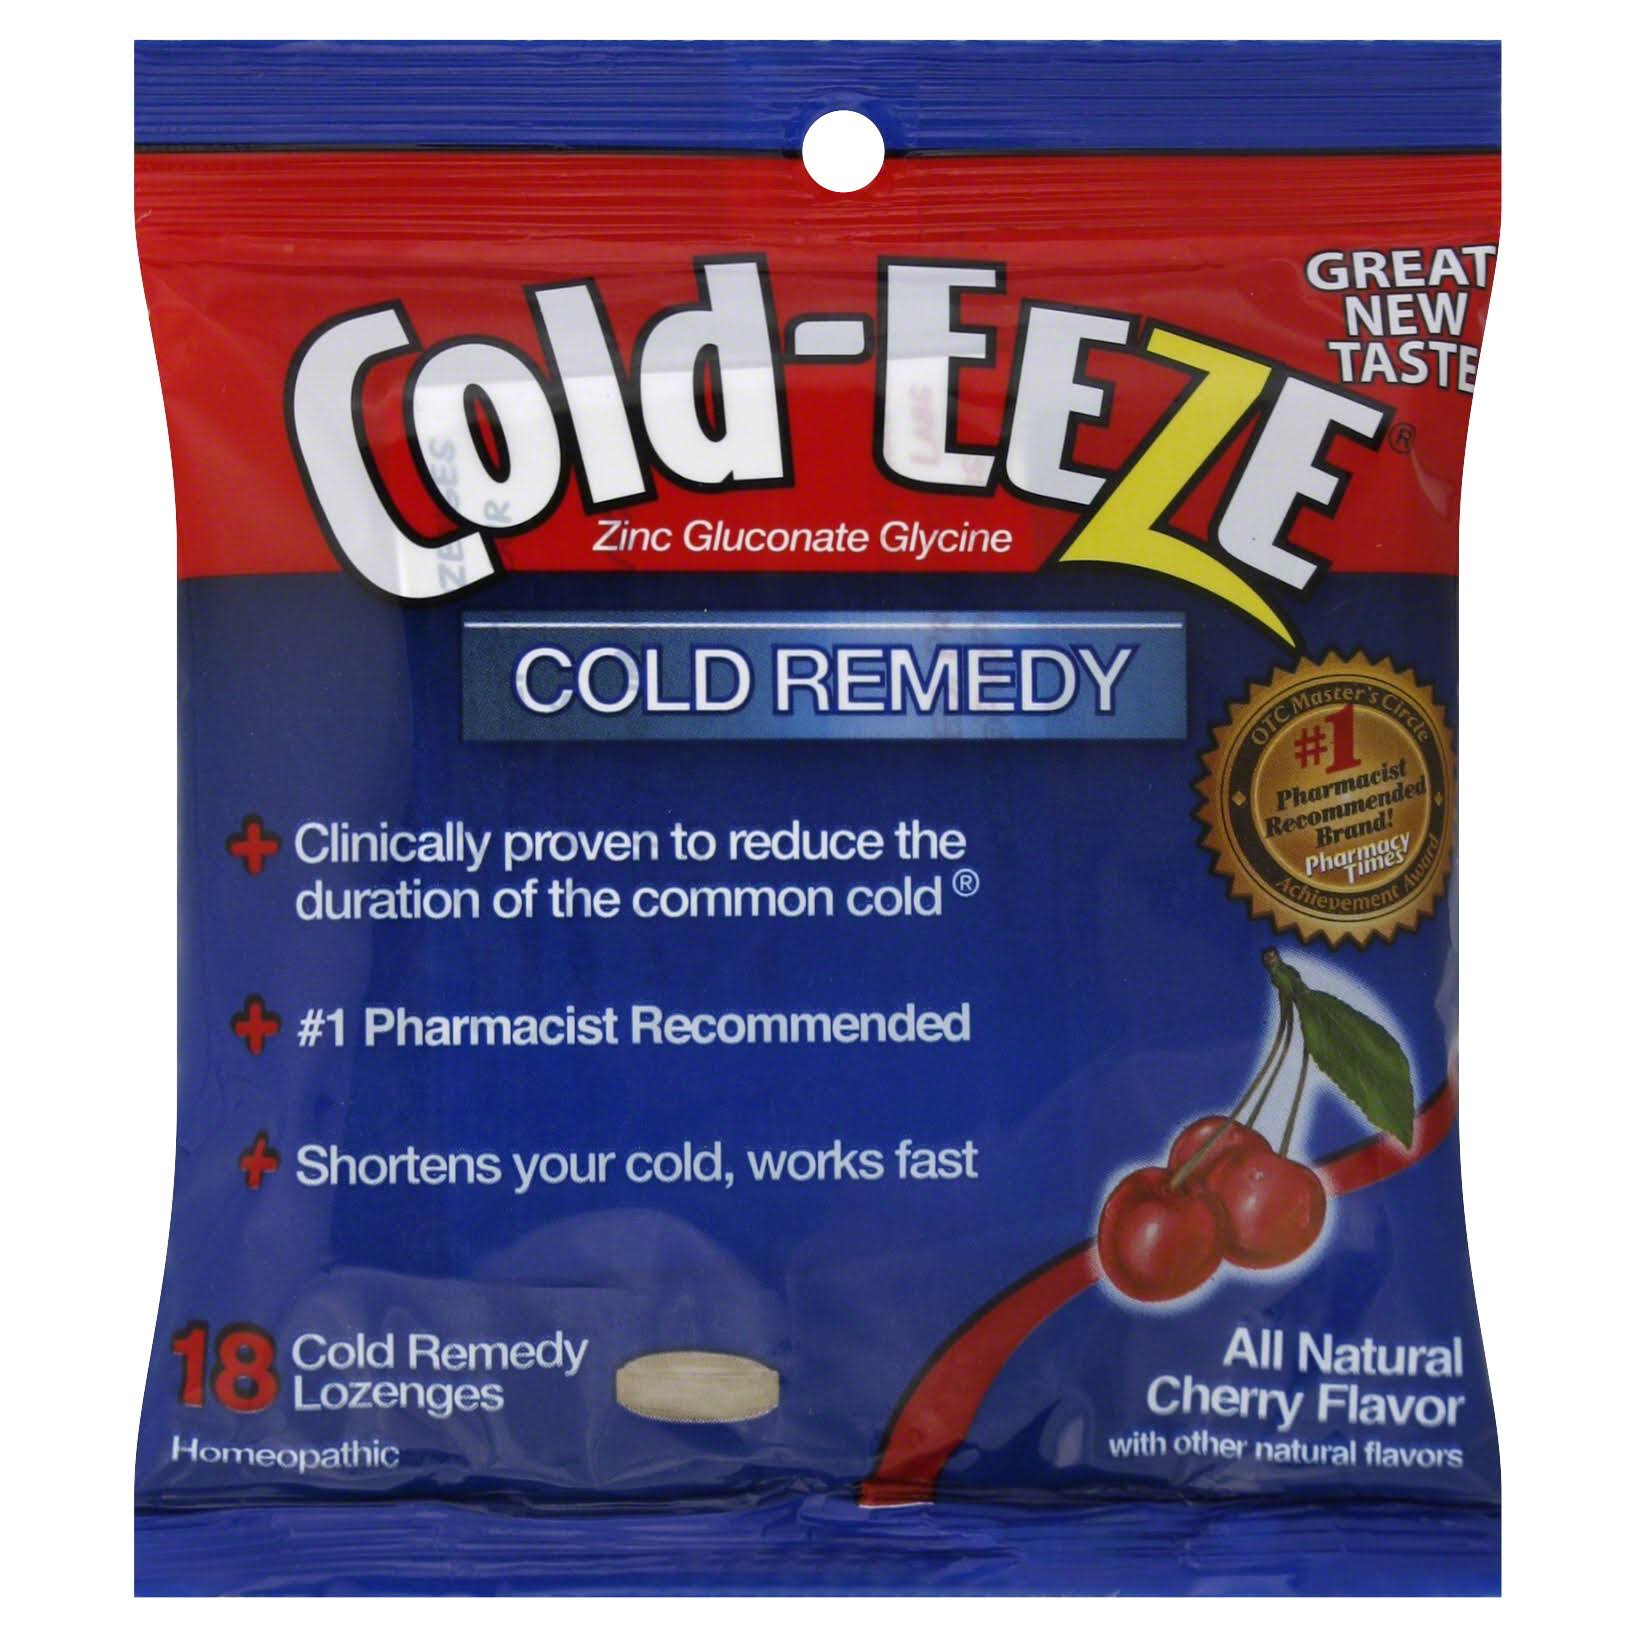 Cold-Eeze Cold Remedy - 18 Cold Remedy Lozenges, Cherry